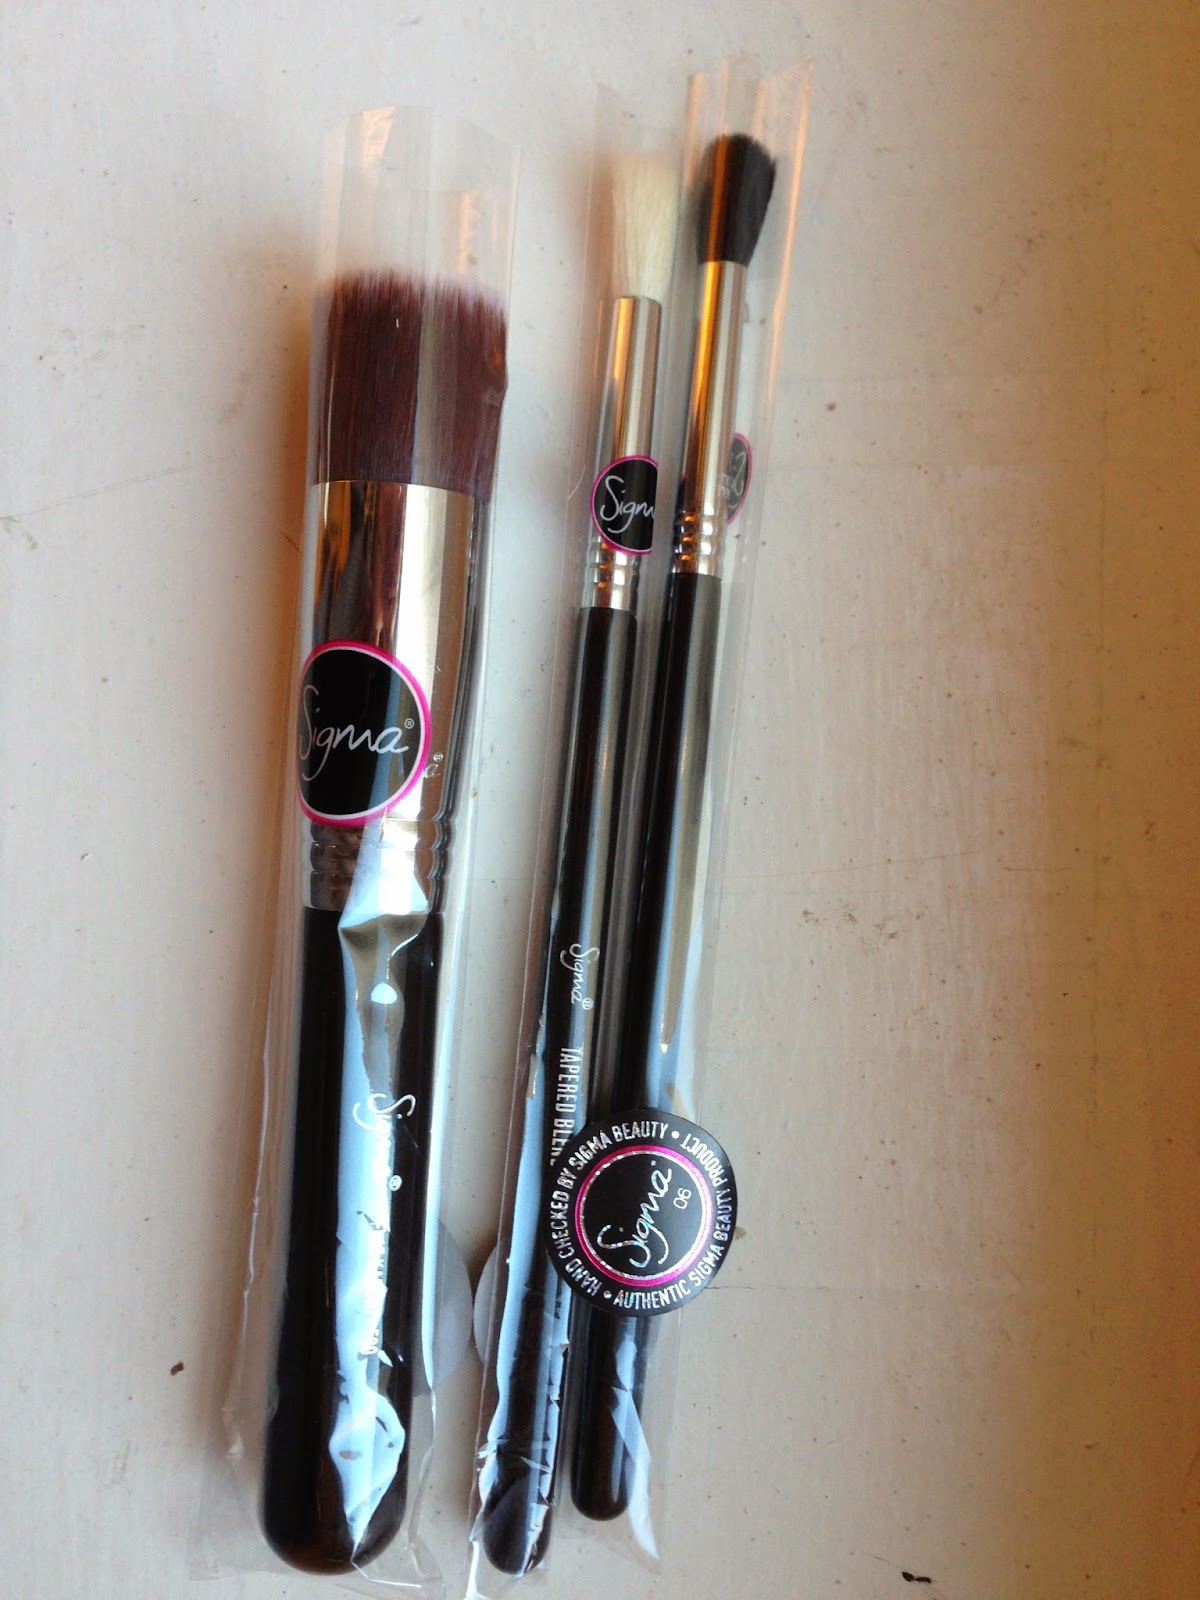 17ec6fd0a Every beauty guru raves and raves about Sigma Beauty makeup brushes. It  took me long enough, but I finally decided to get some. Unfortunately they  were out ...